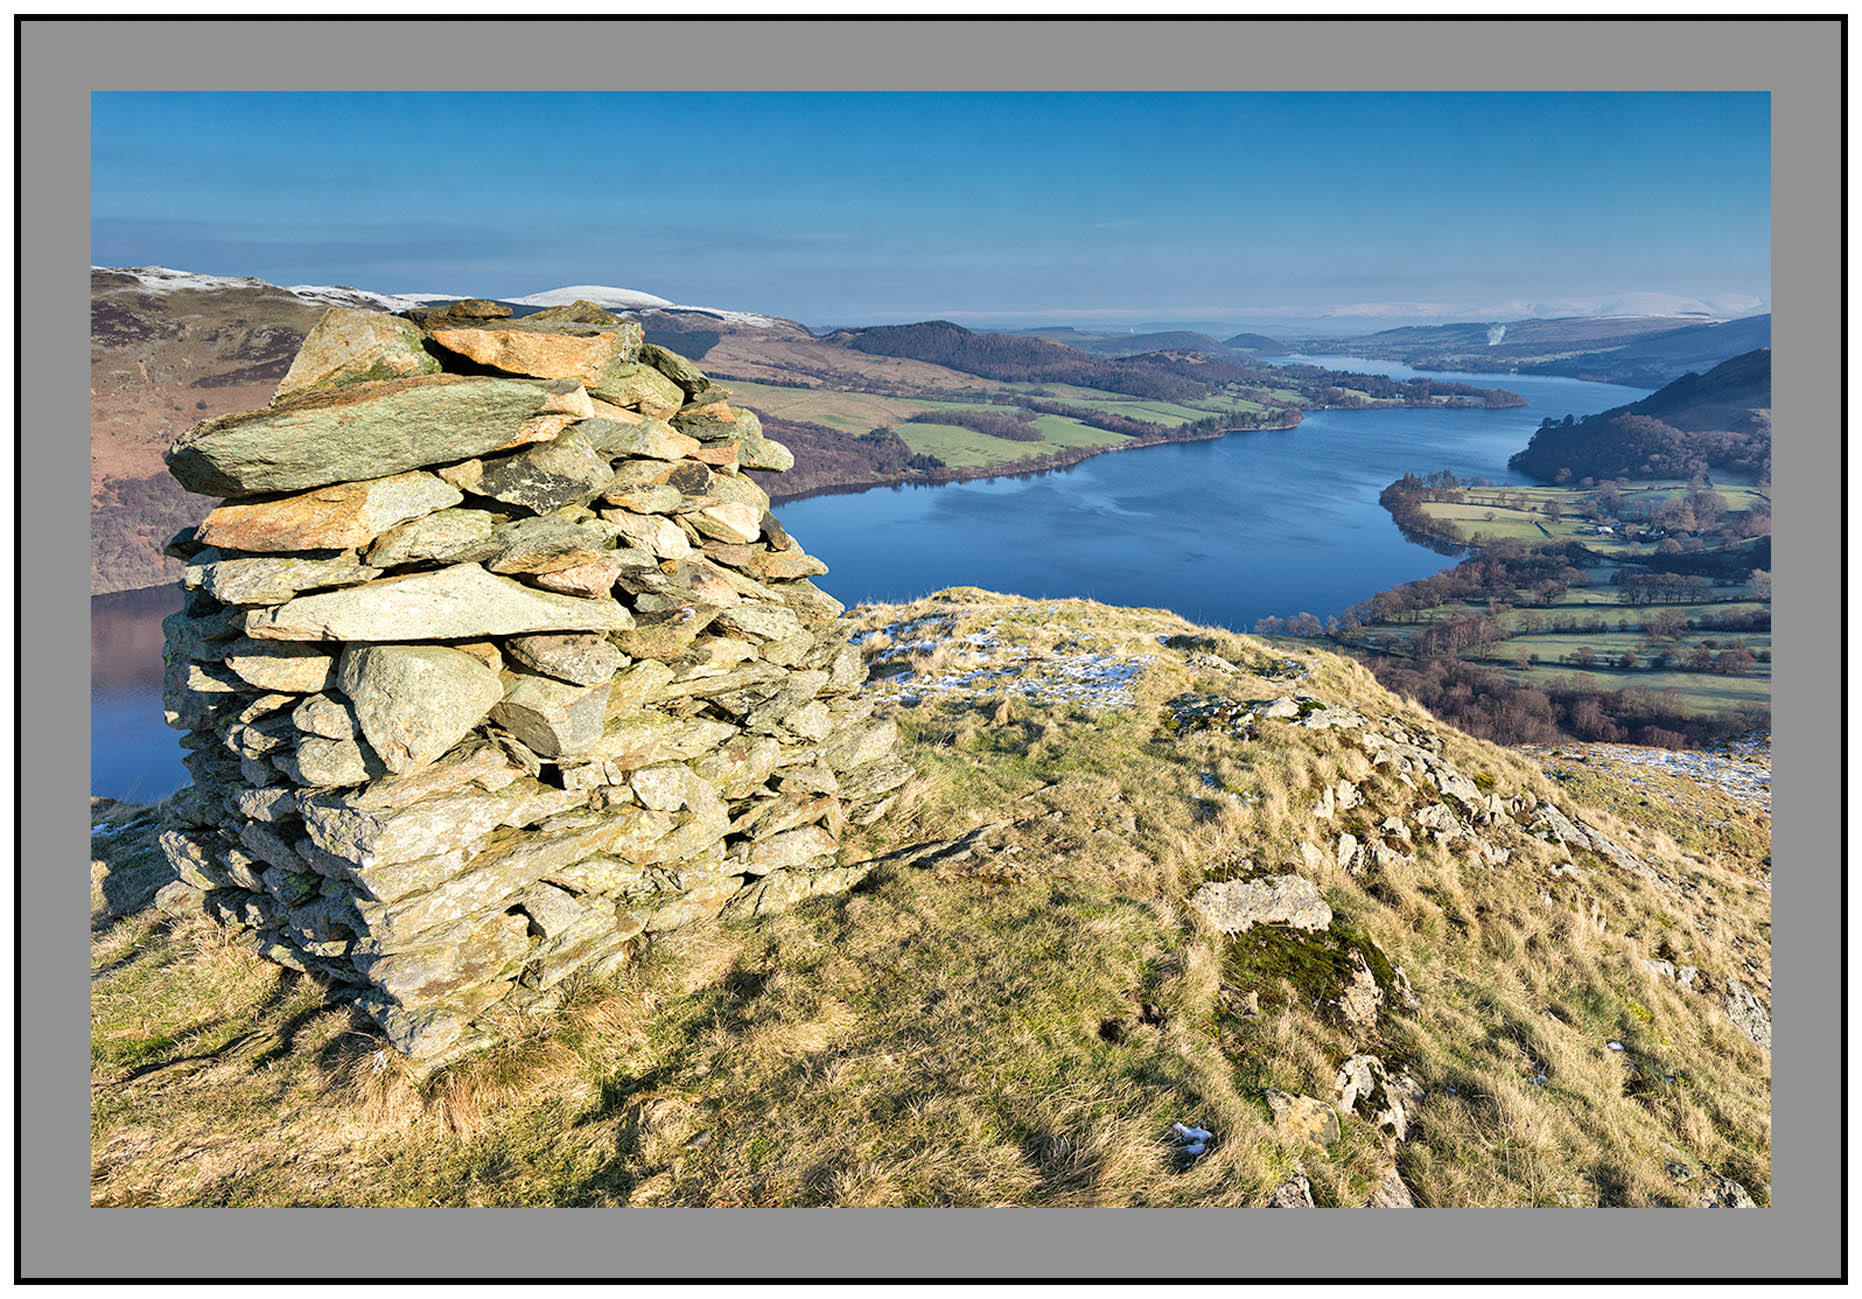 S2015467 The cairn on Kilbert How with Ullswater and the Northern Pennines in the distance